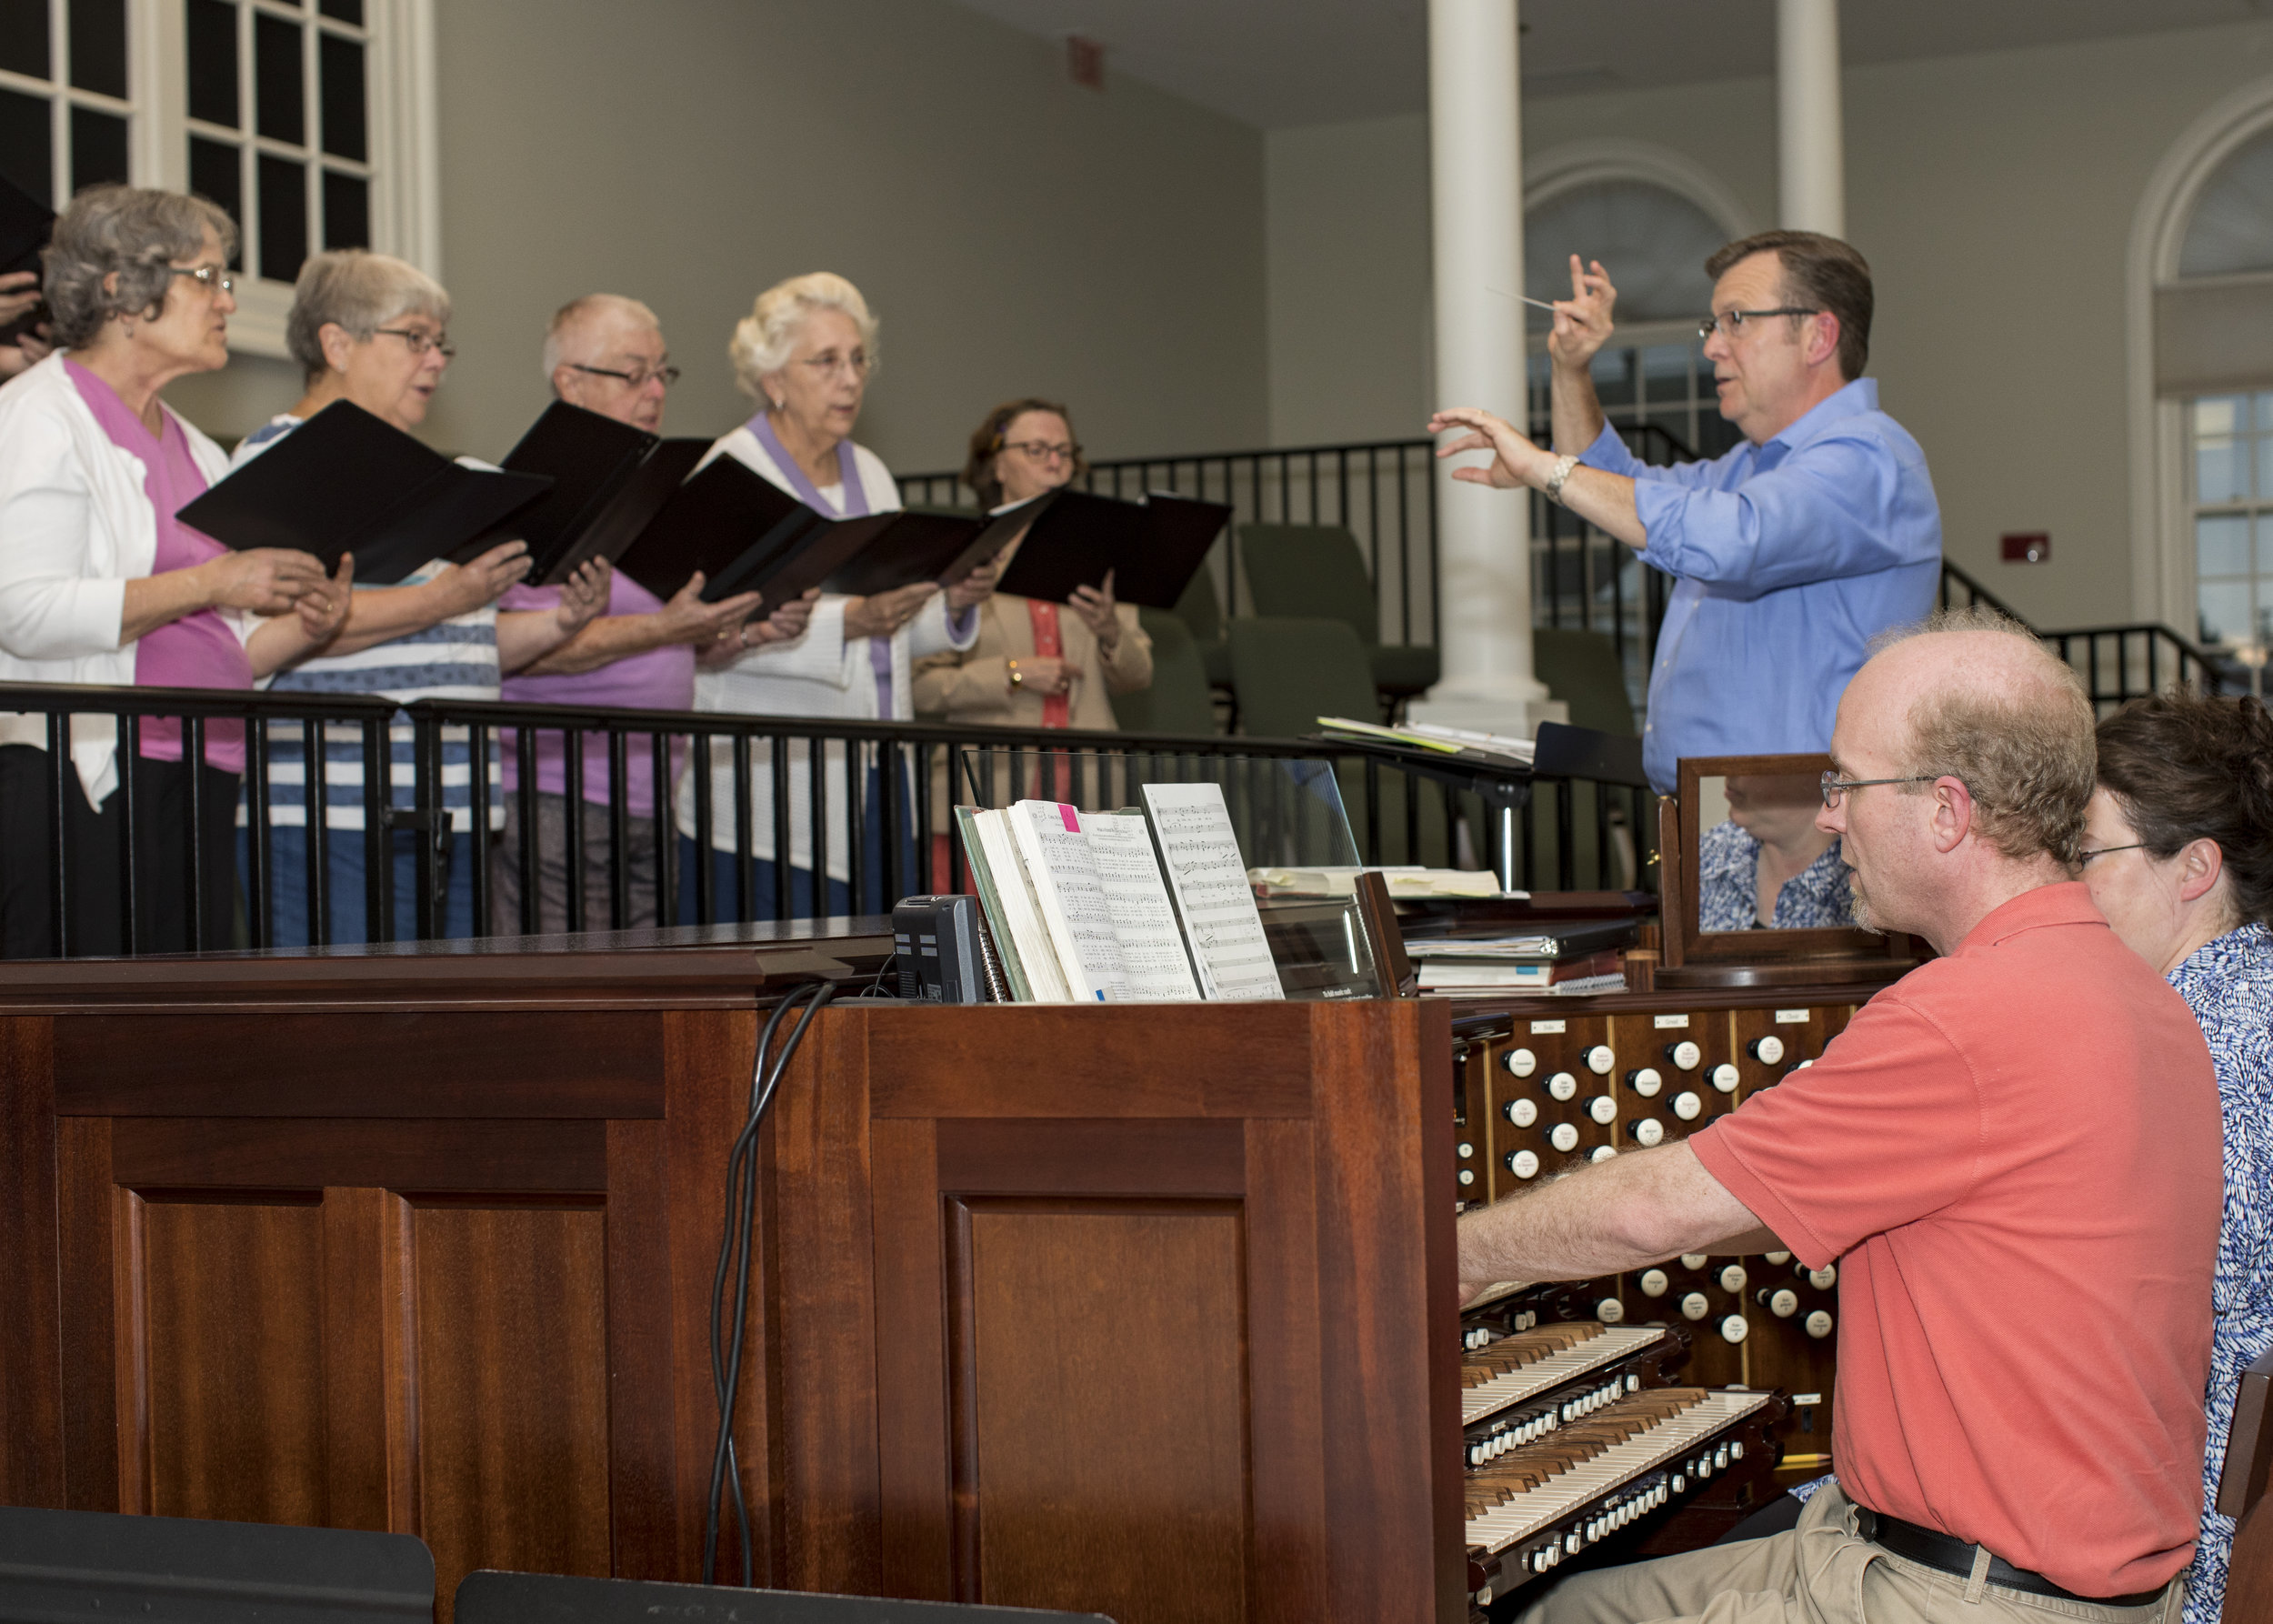 Adult & Children's Choirs - Choirs rehears and sing September through June. Contact Frank Dodd for details about any of our music opportunities.